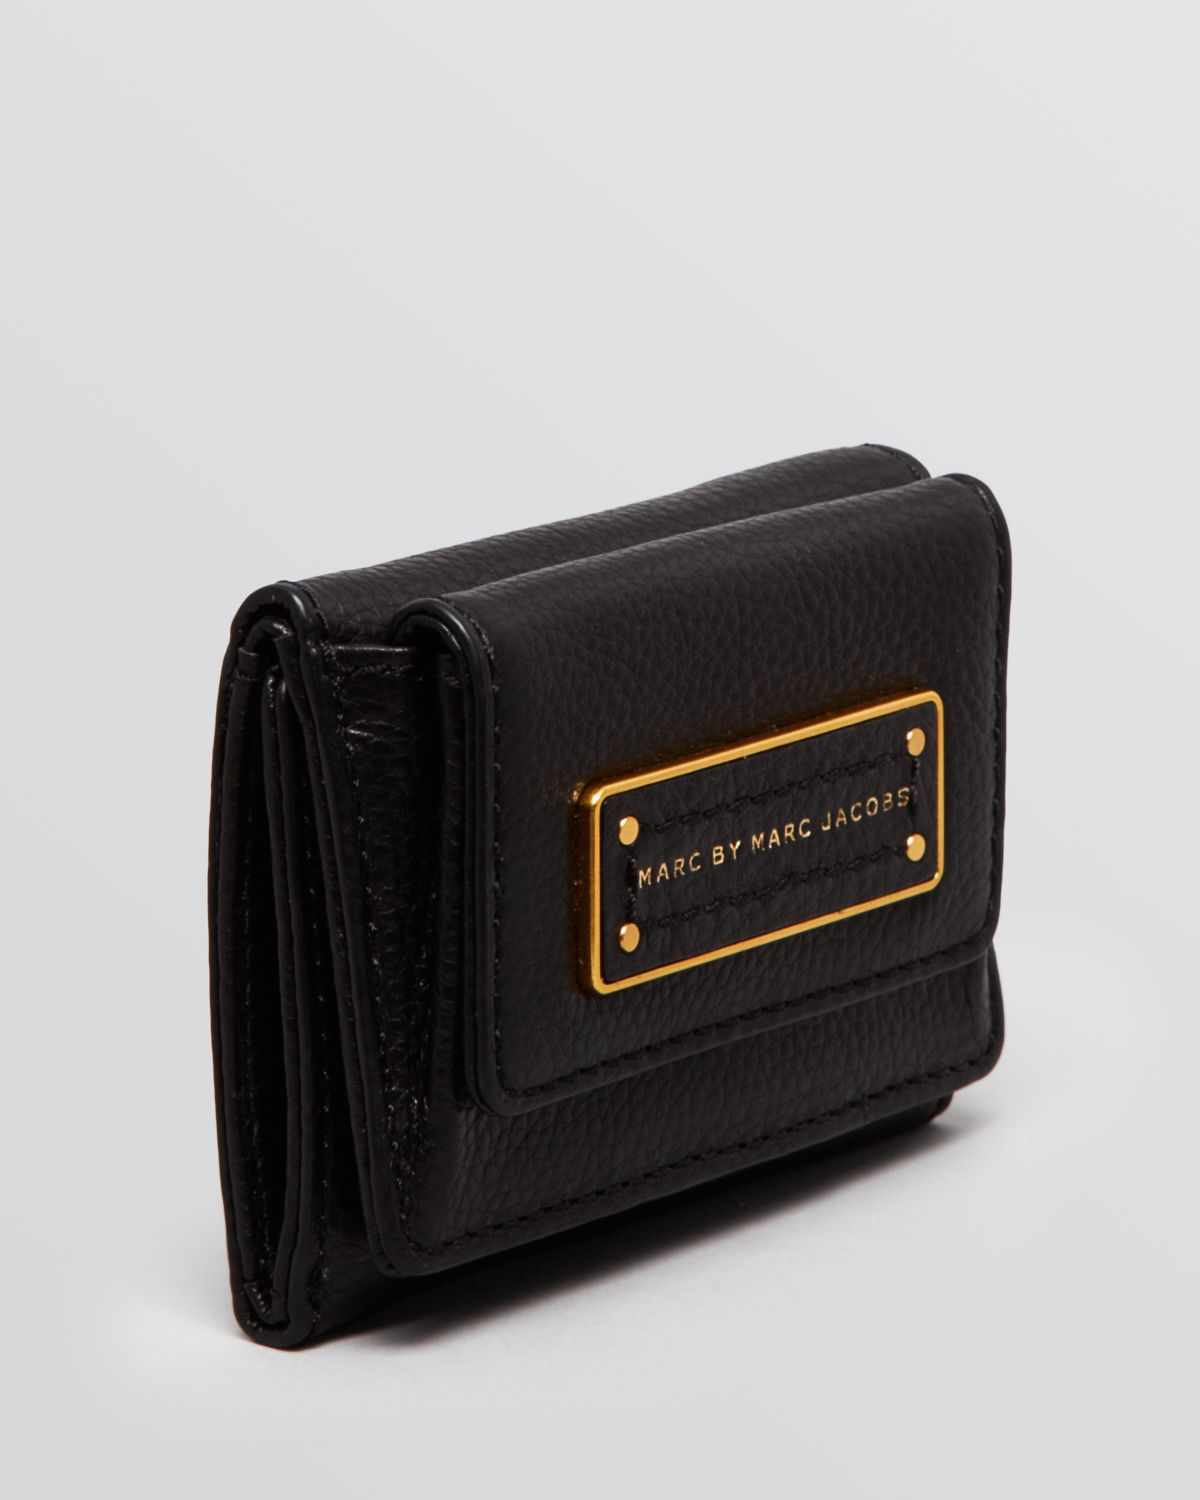 f02cb4324ea4 Marc By Jacobs Wallet Black - Best Photo Wallet Justiceforkenny.Org